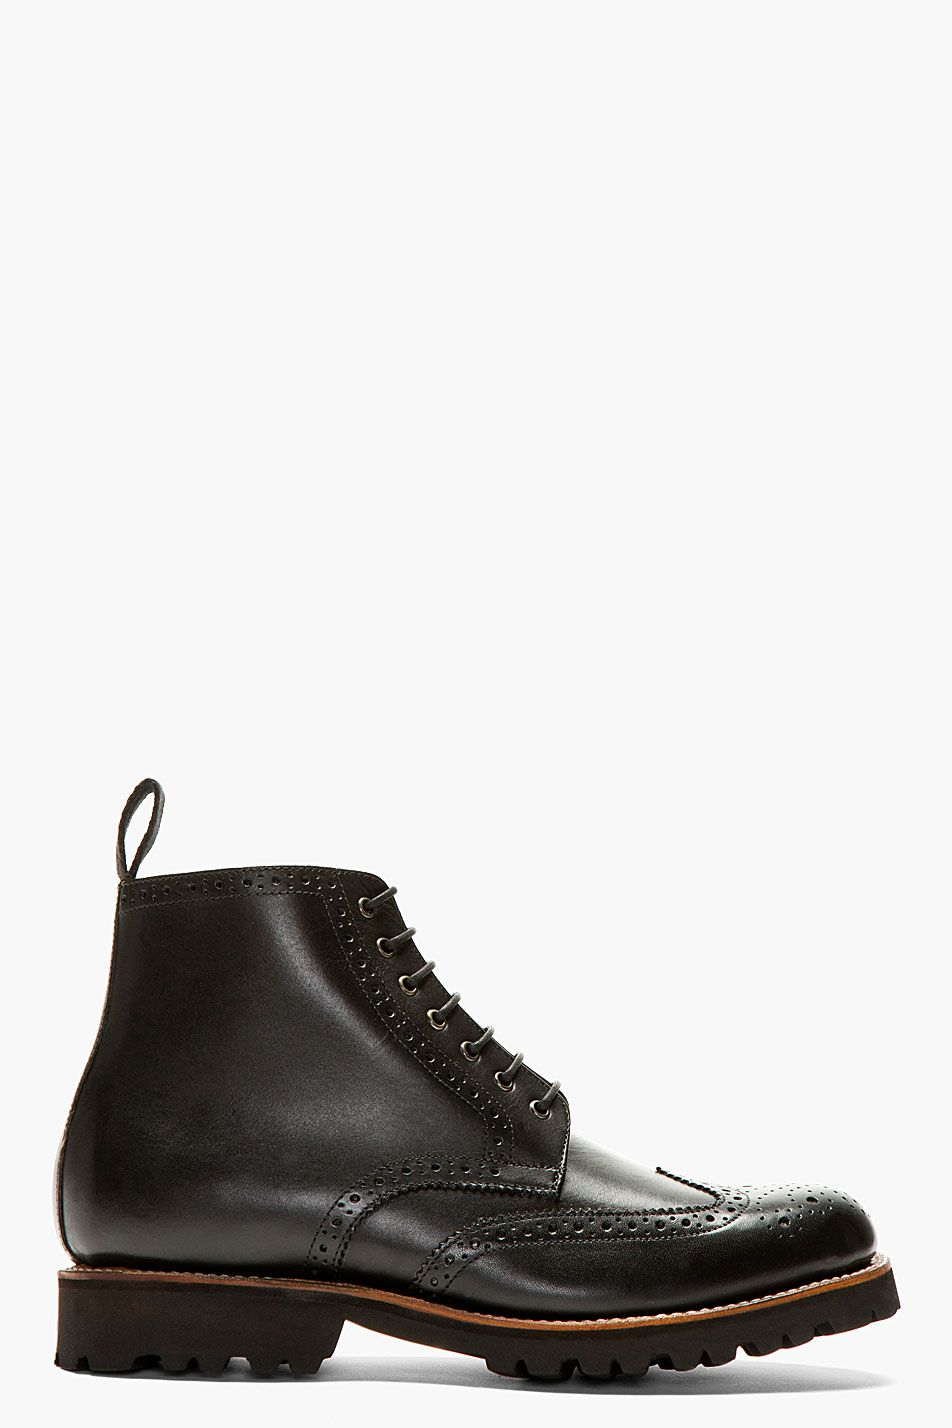 GRENSON Black Leather Brogue Ankle Boots